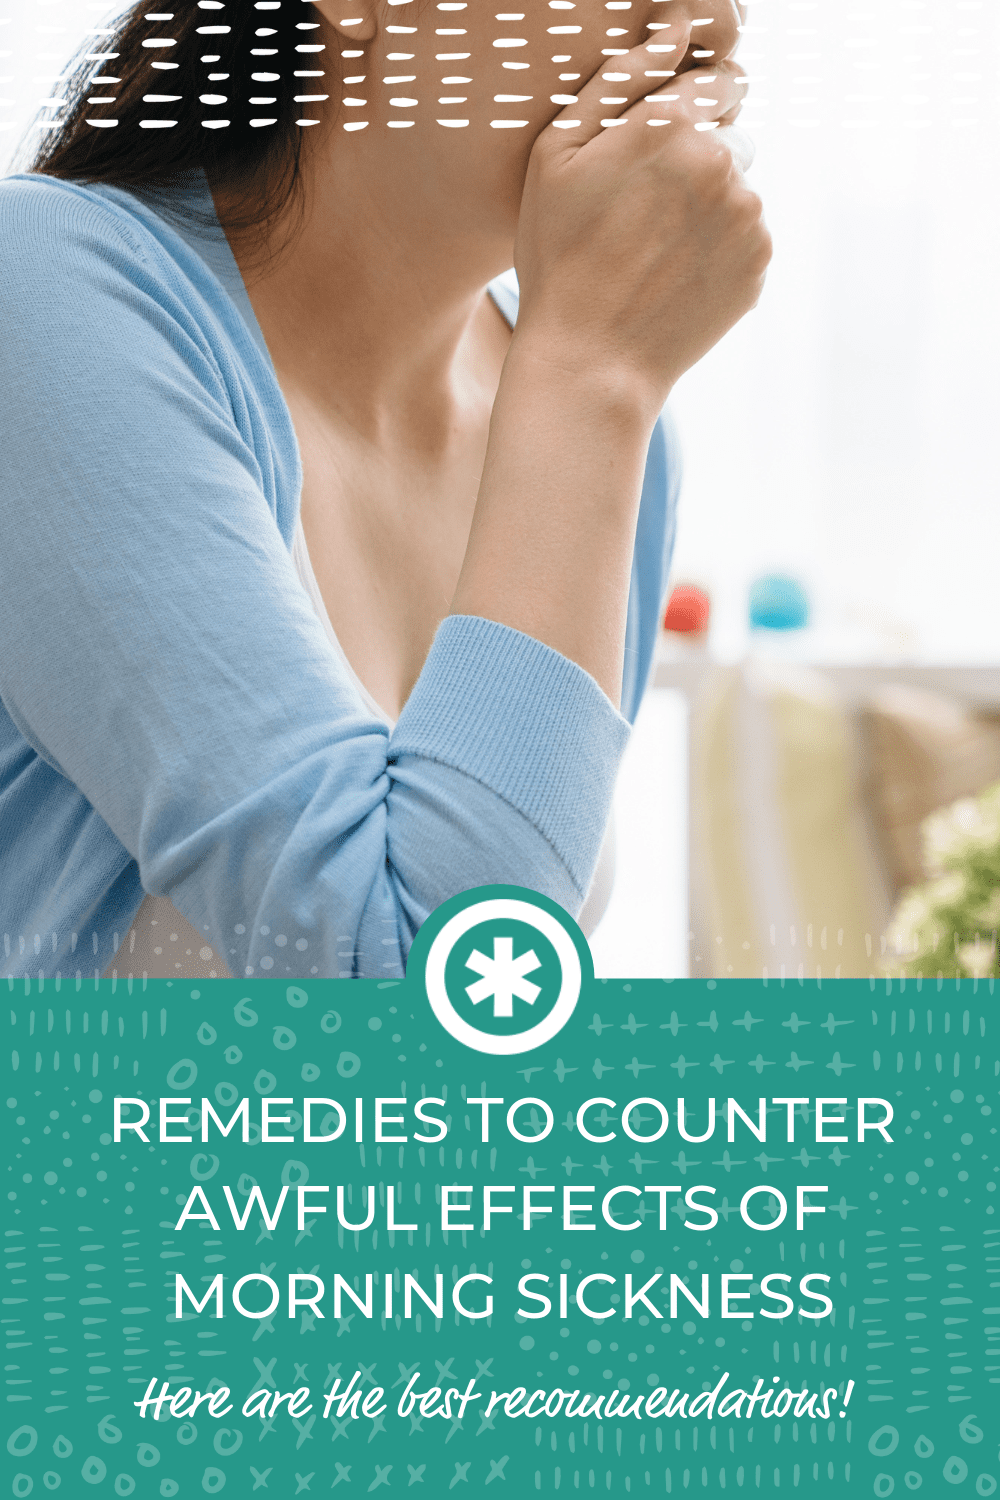 Remedies to Counter the AWFUL effects of Morning Sickness